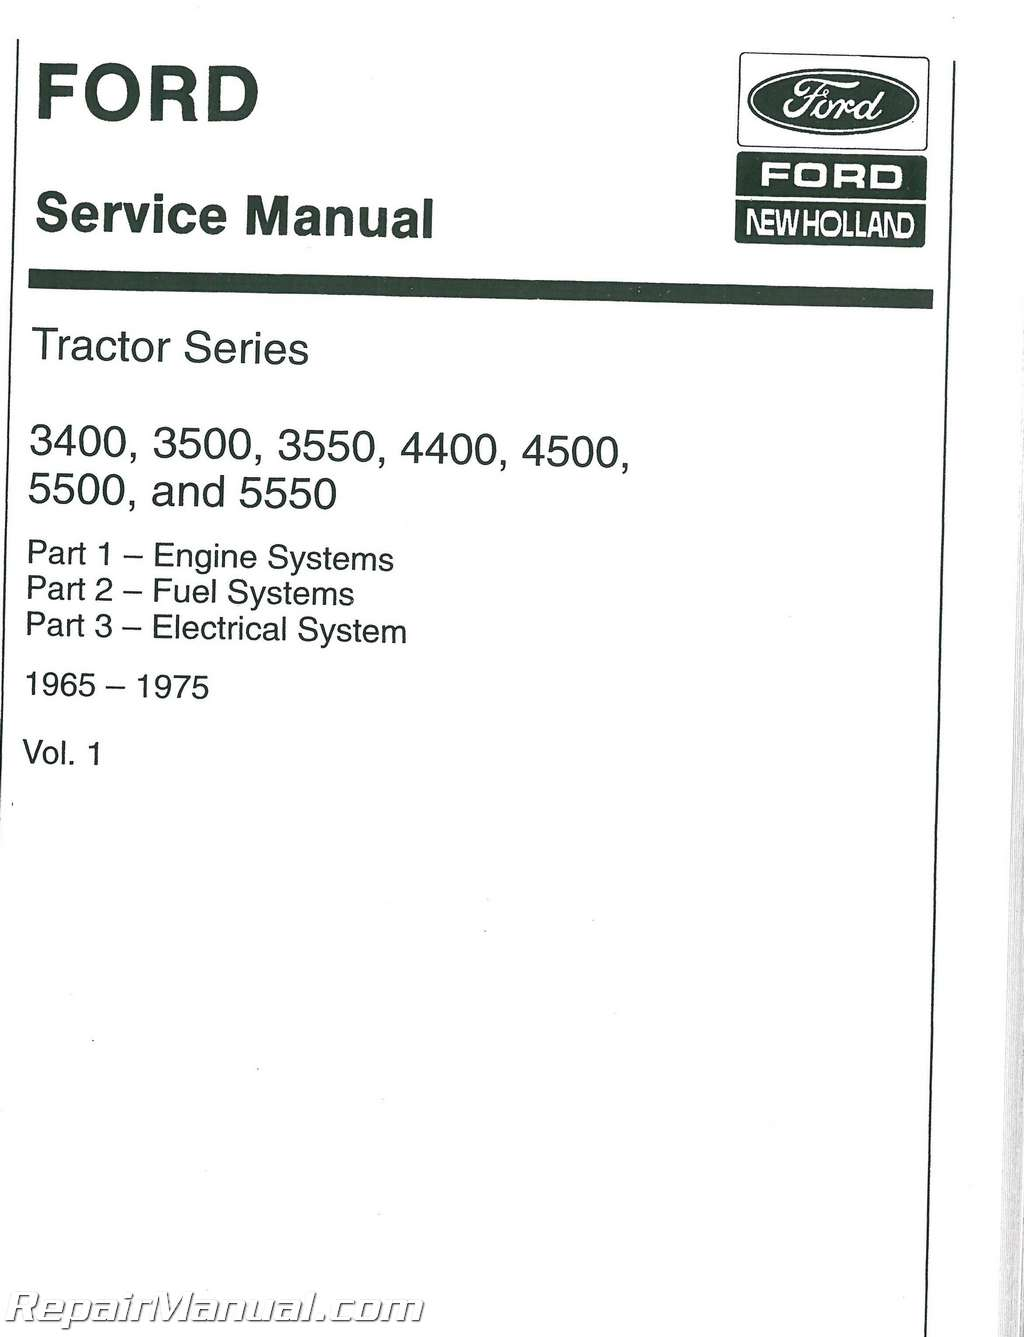 background image Array - ford 3400 3500 3550 4500 ind 3 cyl tractor only 65  75 service manual ...